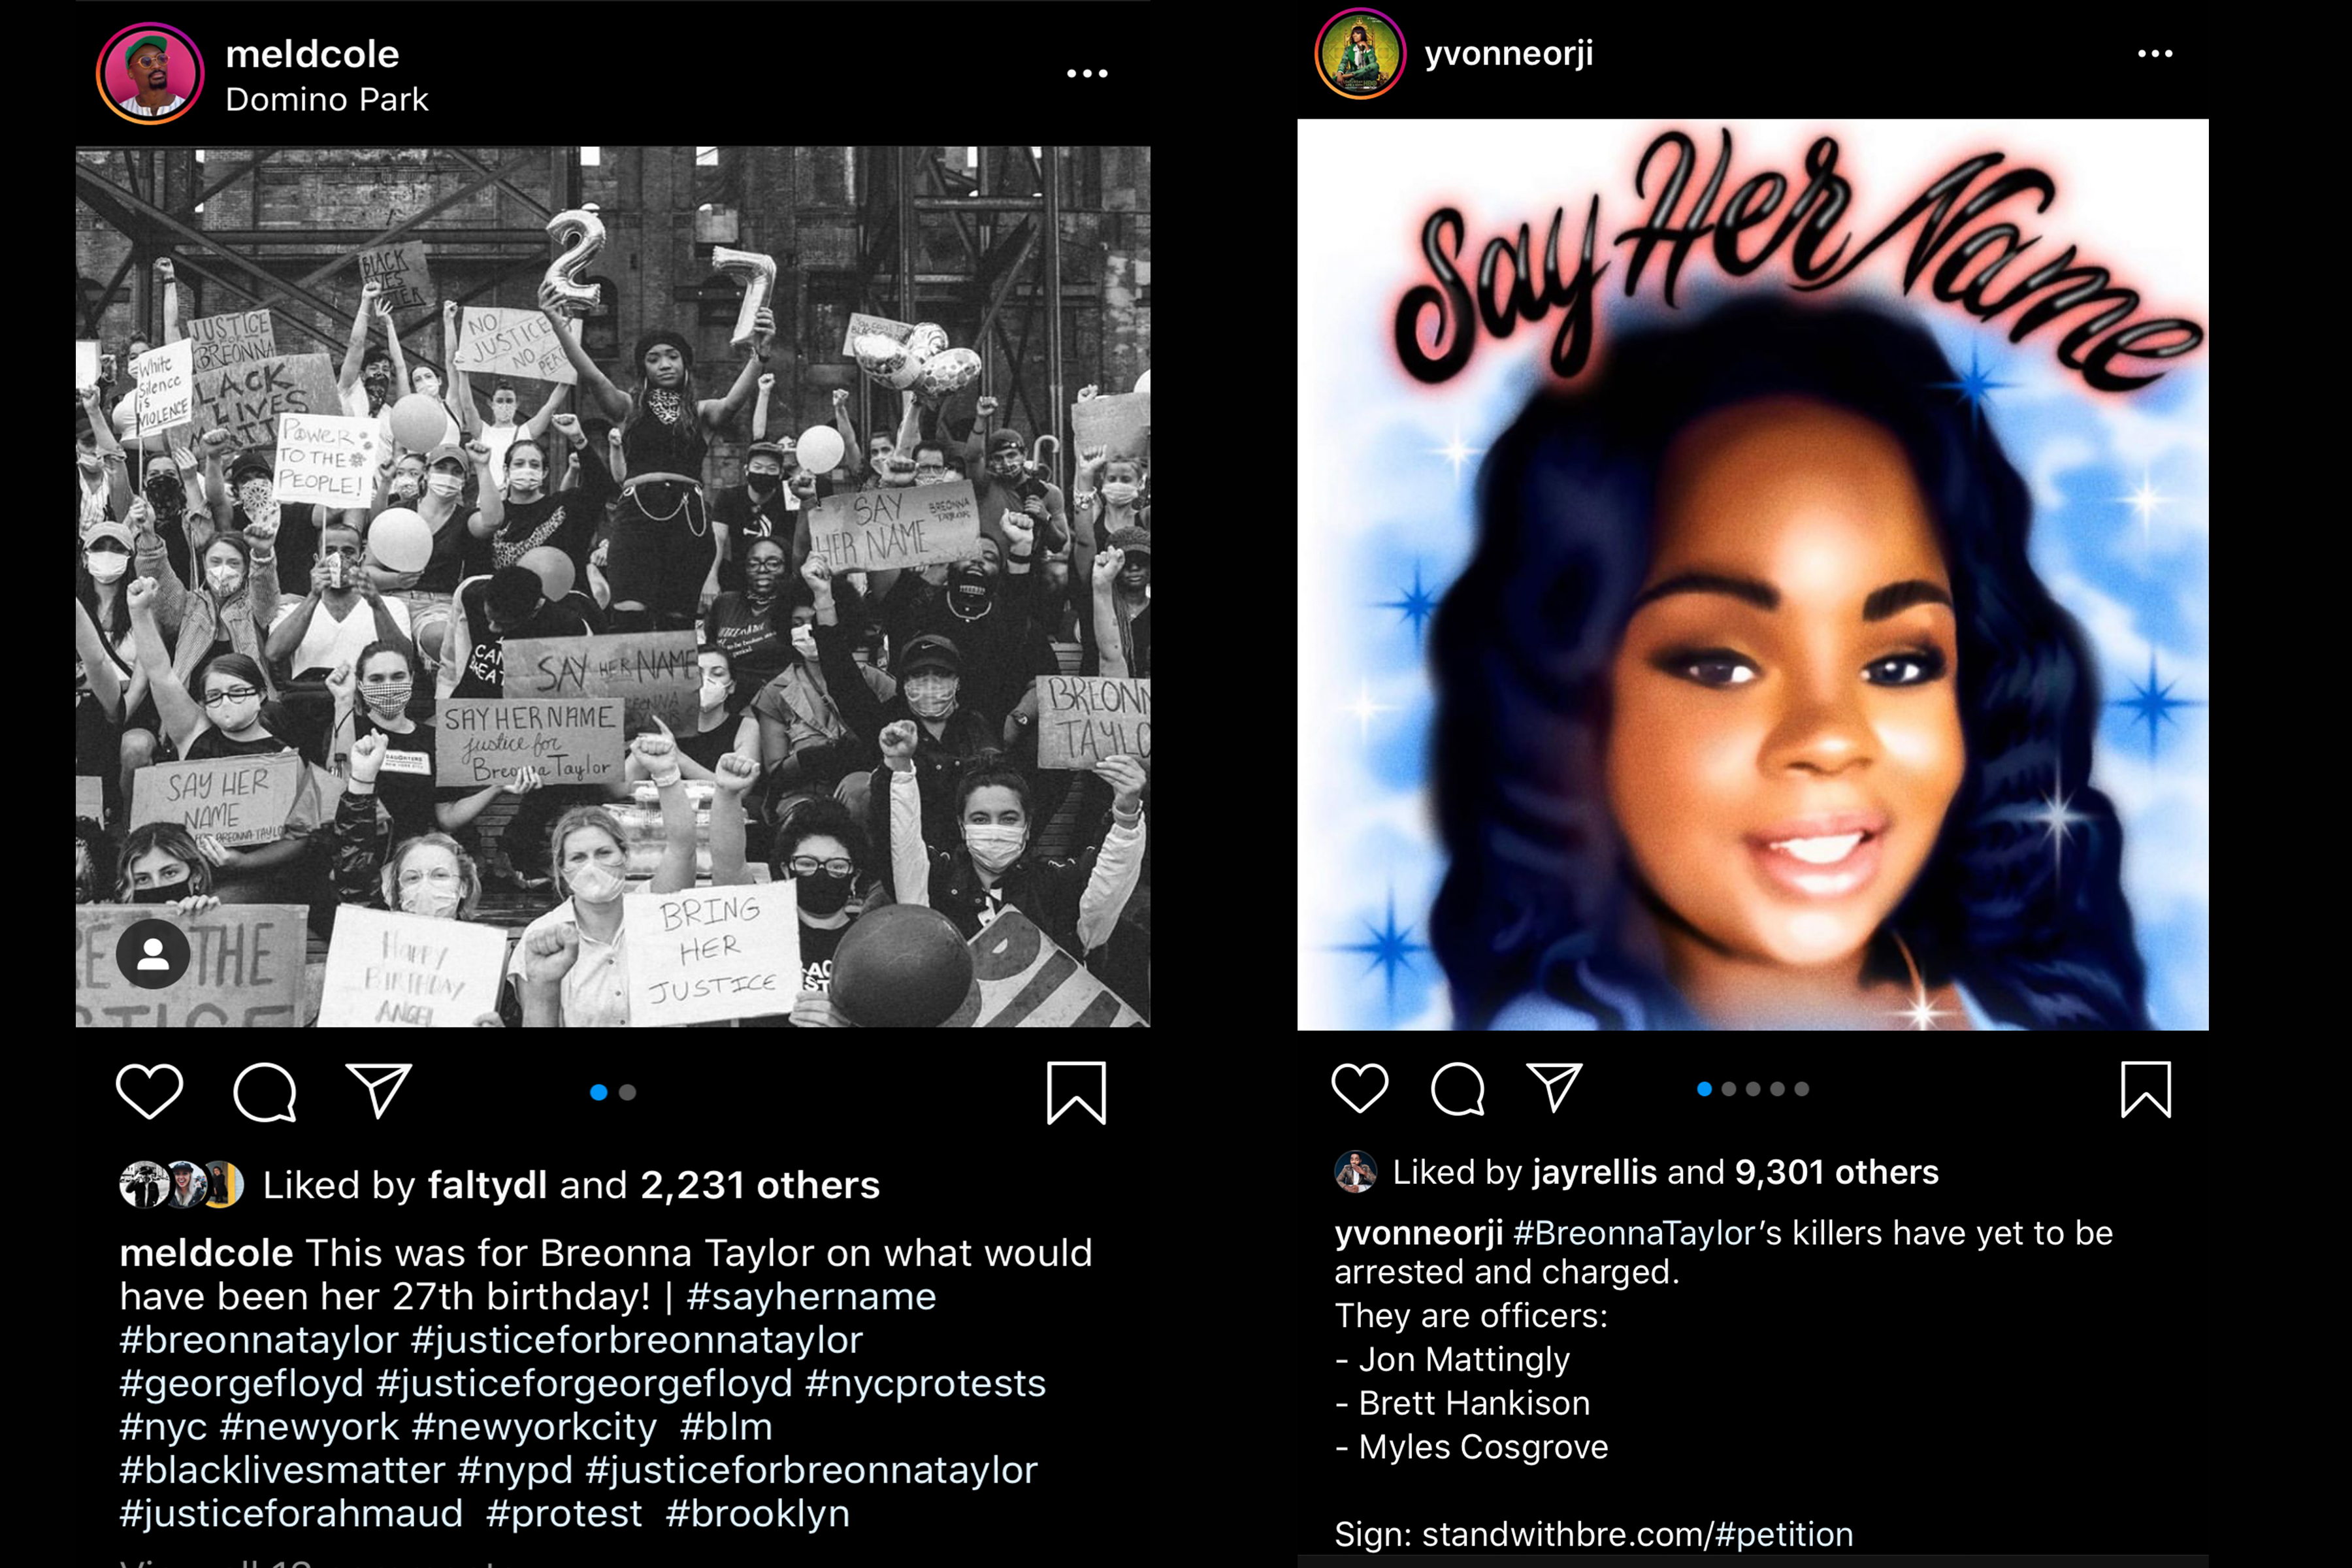 Instagram posts from Mel D. Cole and Yvonne Orji.